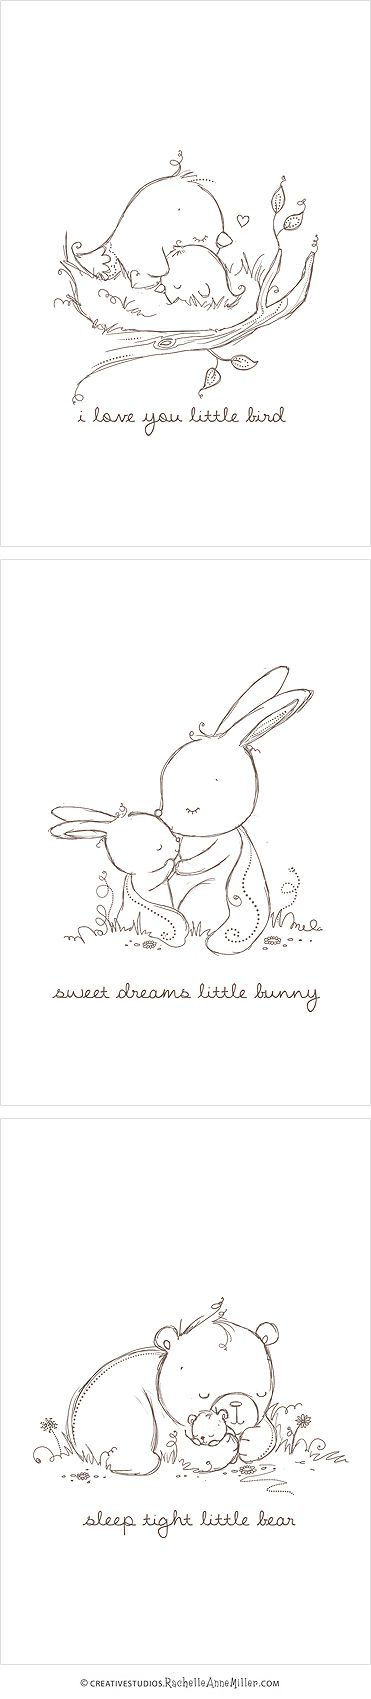 Baby Animal Sketches Great for greeting cards or other creative projects!